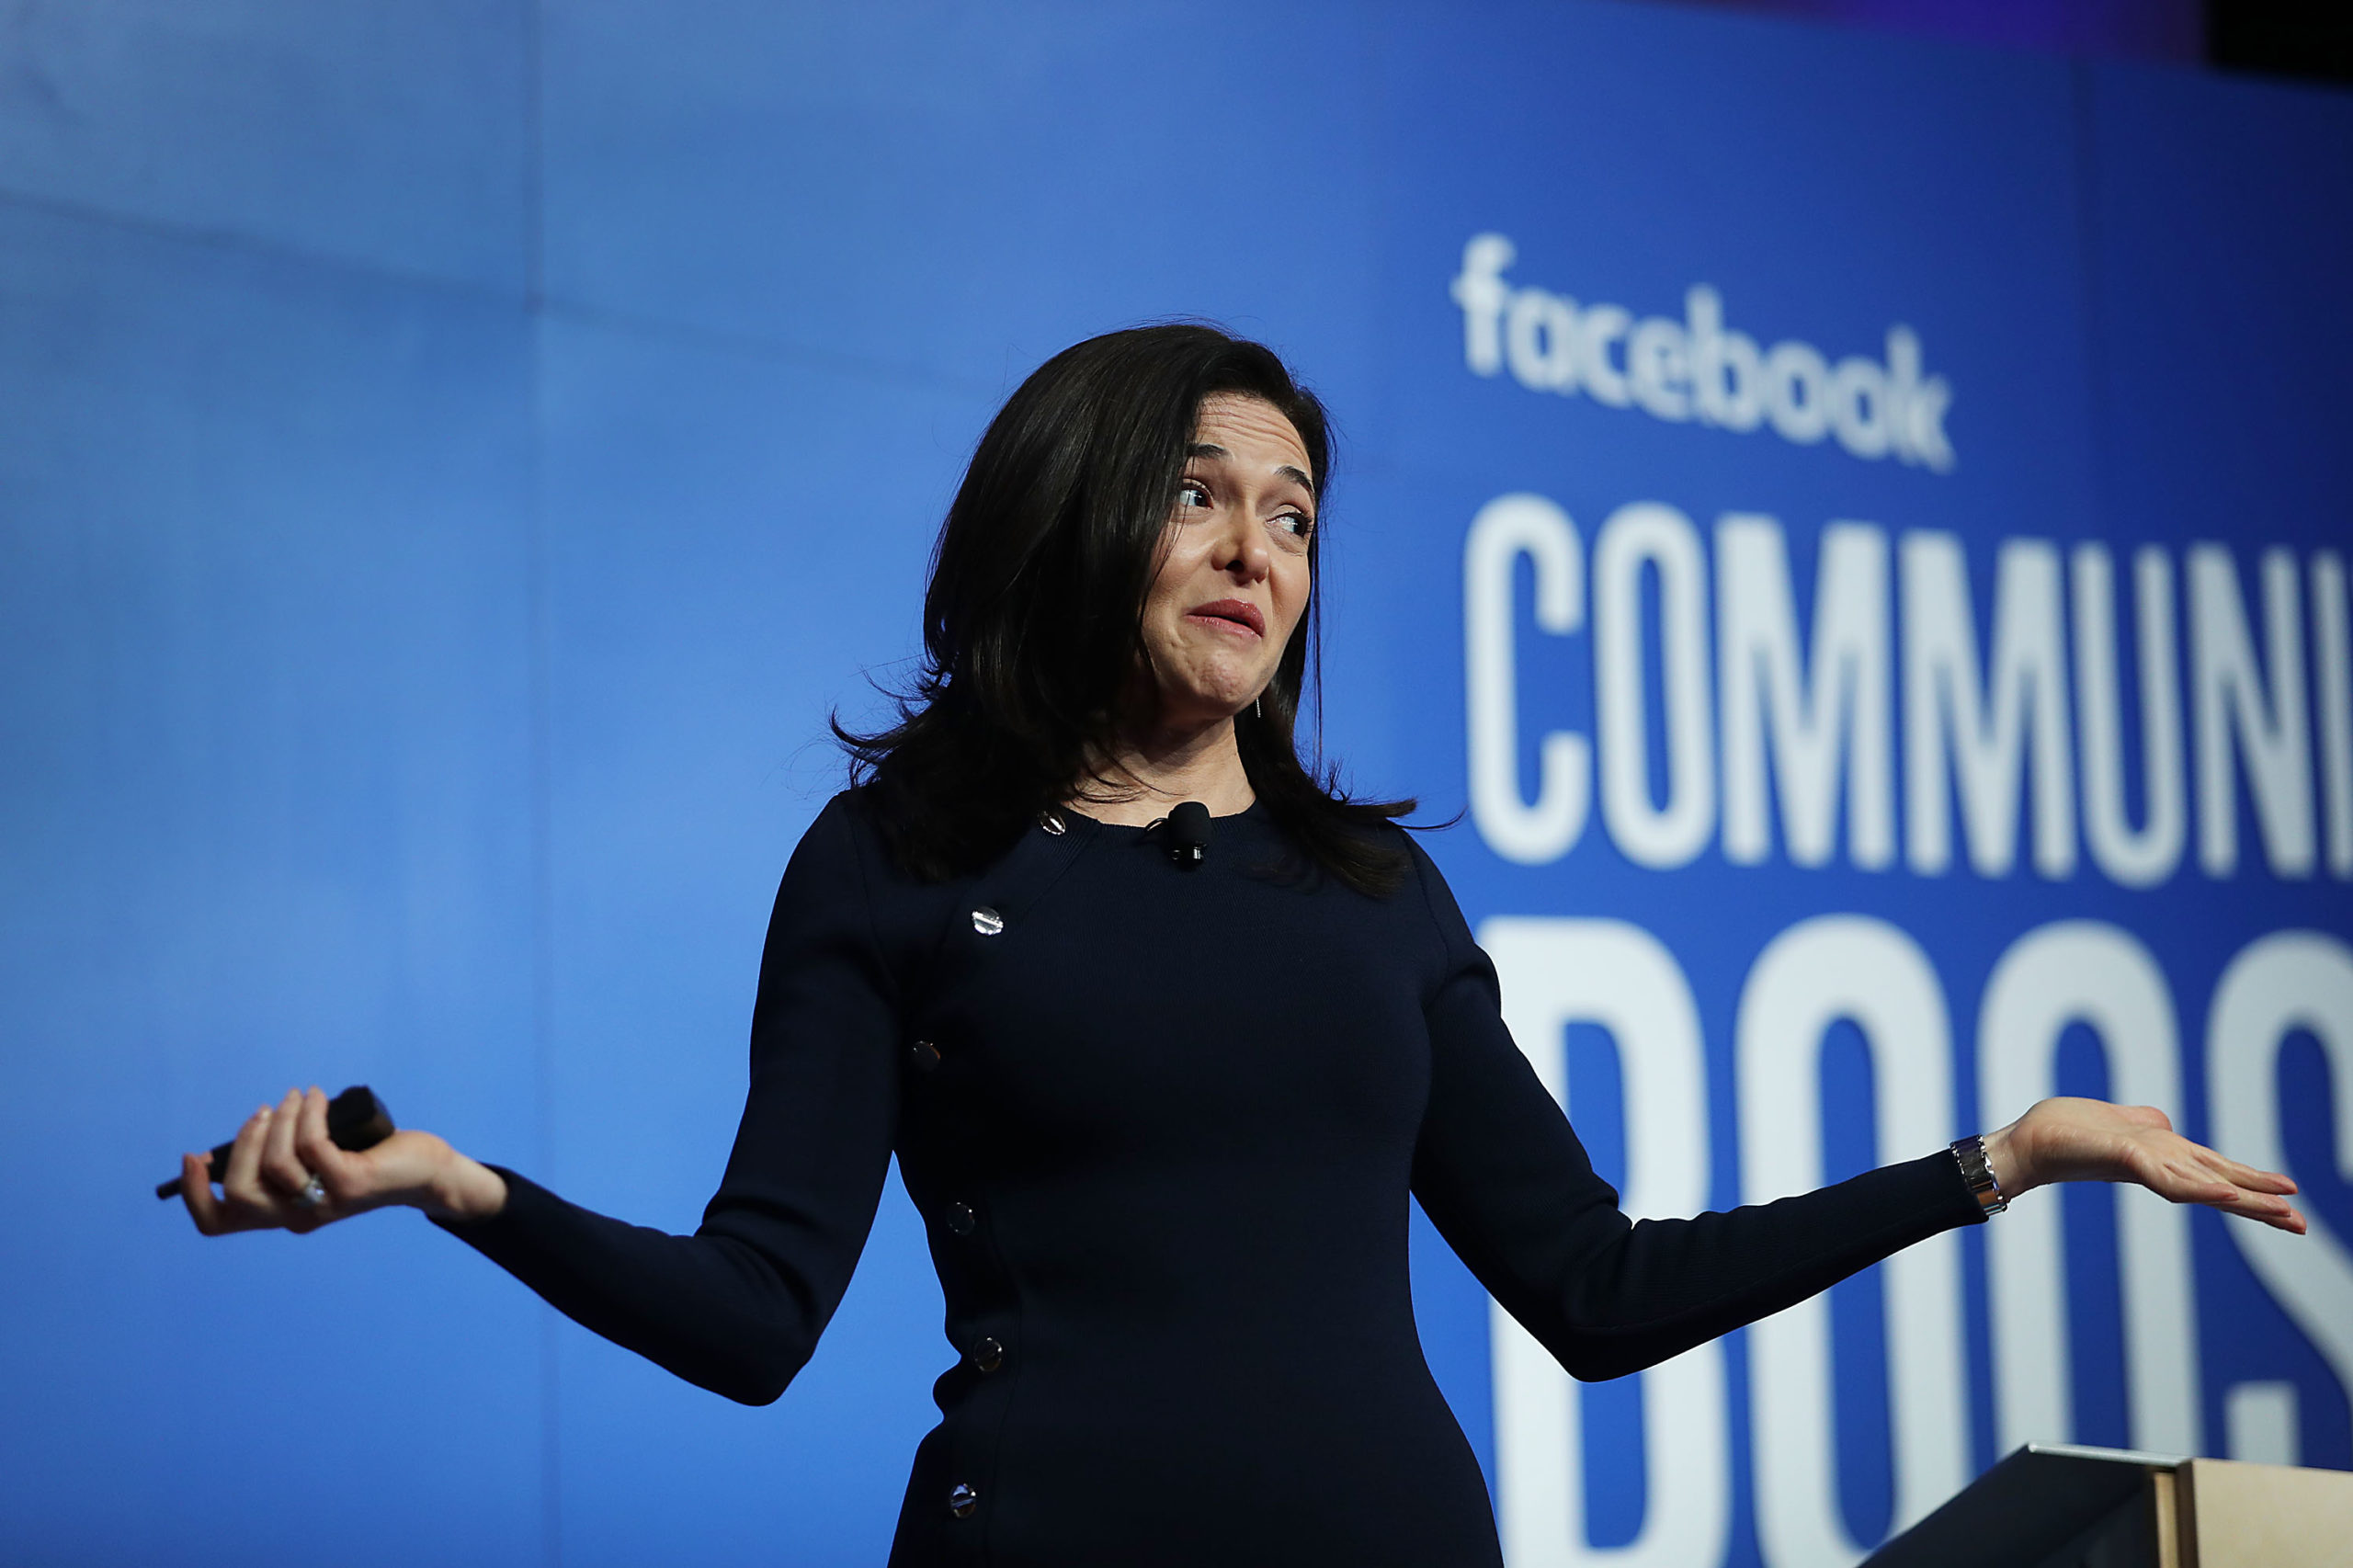 Facebook Chief Operating Officer Sheryl Sandberg speaks during a Facebook Community Boost event at the Knight Center on December 18, 2018 in Miami, Florida. (Photo by Joe Raedle/Getty Images)